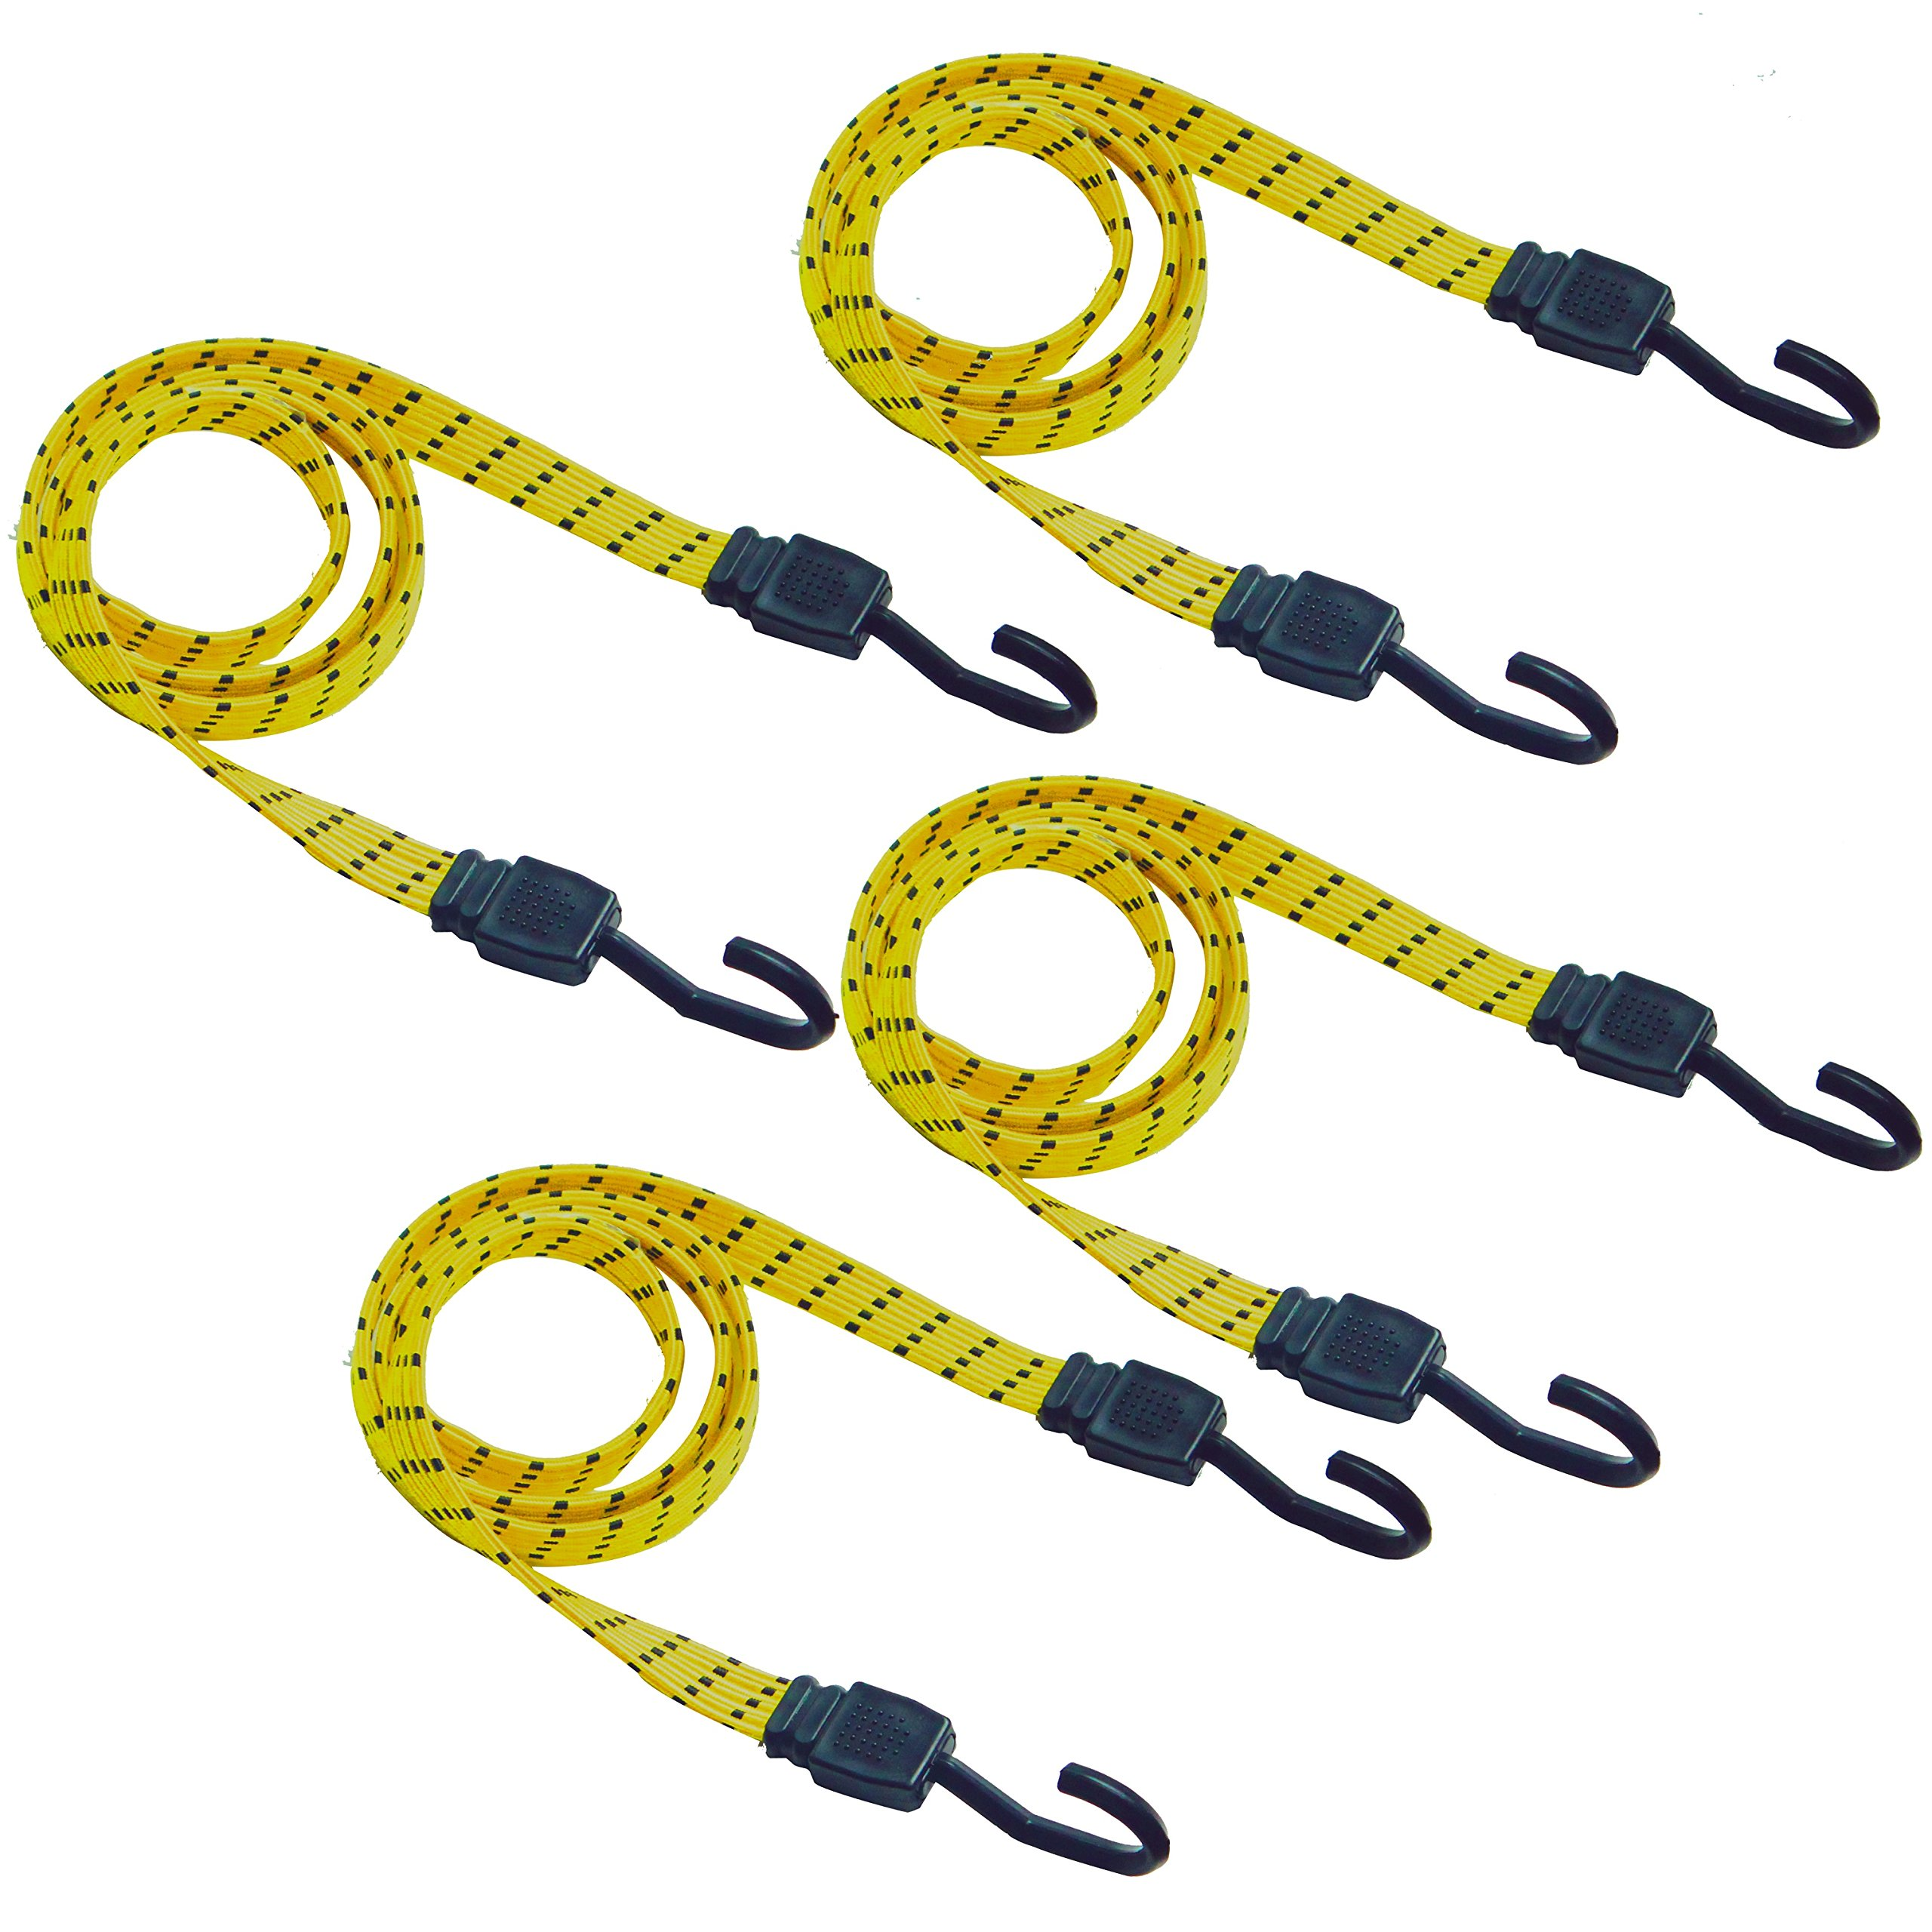 CARTMAN Ultra 48'' Black/Yellow Flat Bungee Cord, 4pk x 48''